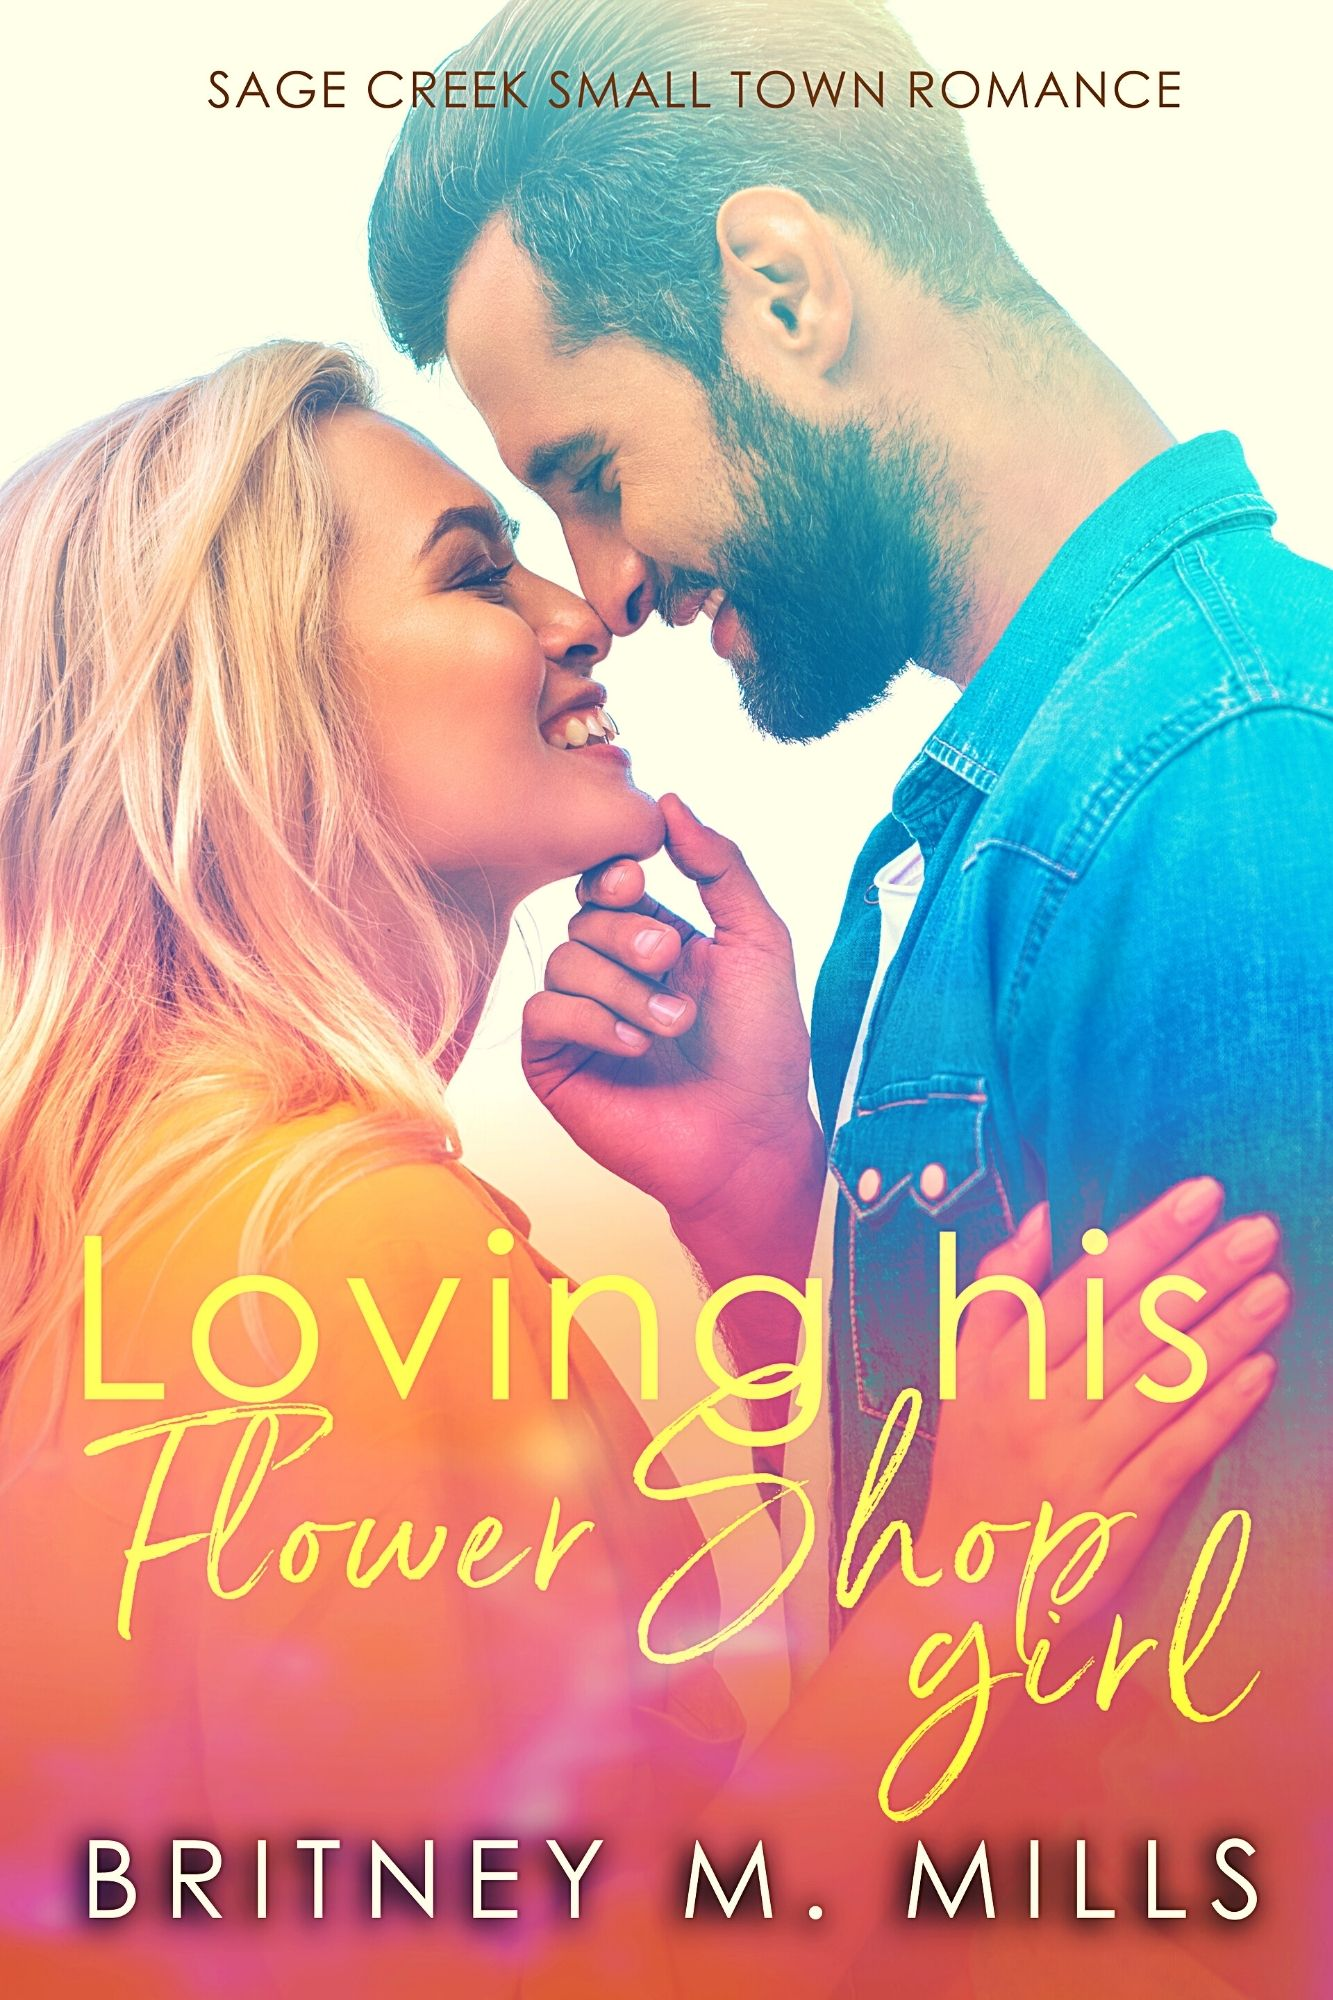 Love Under Construction by Britney M. Mills l A Sage Creek Small Town Romance